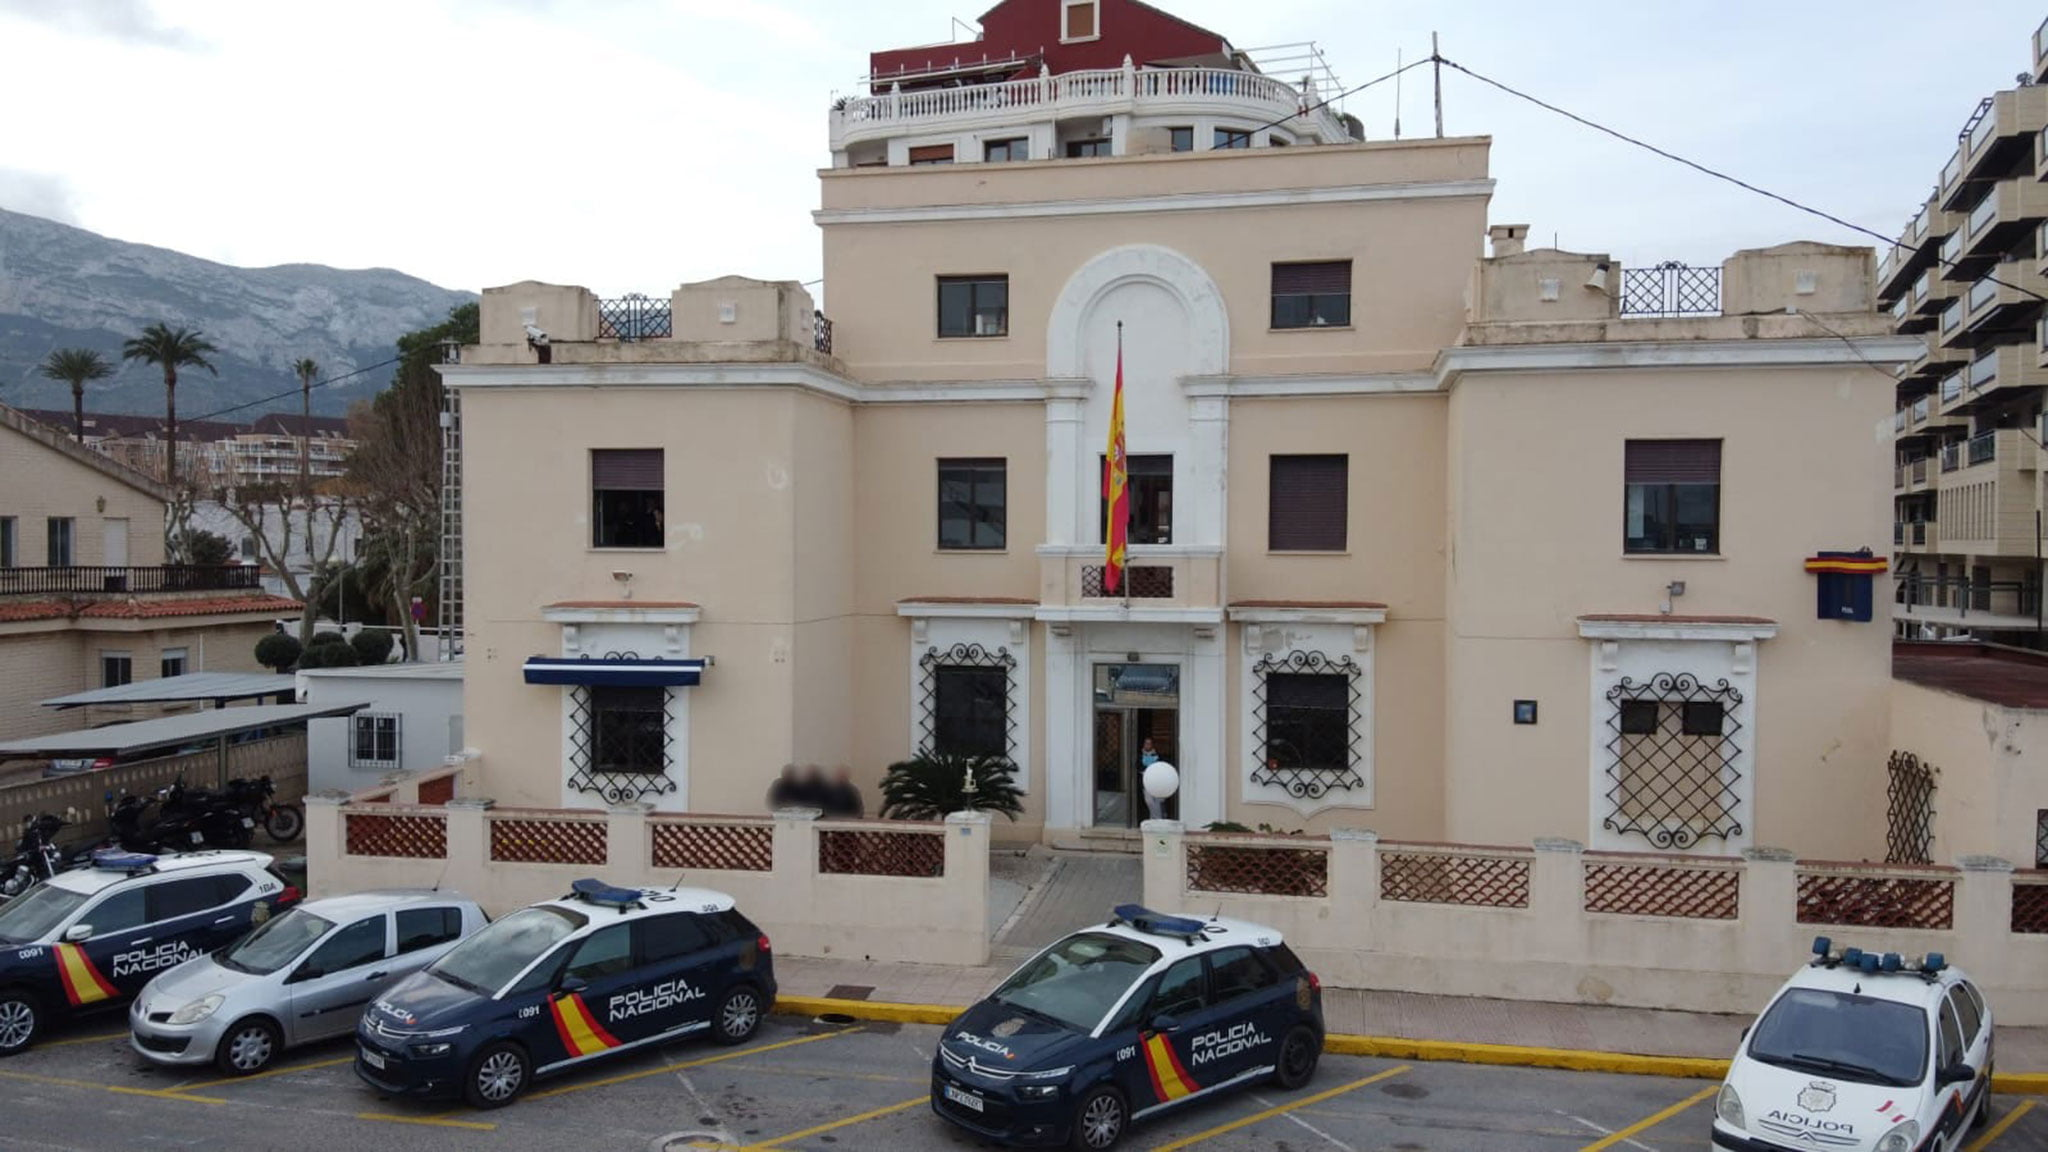 Police station of the National Police in Dénia